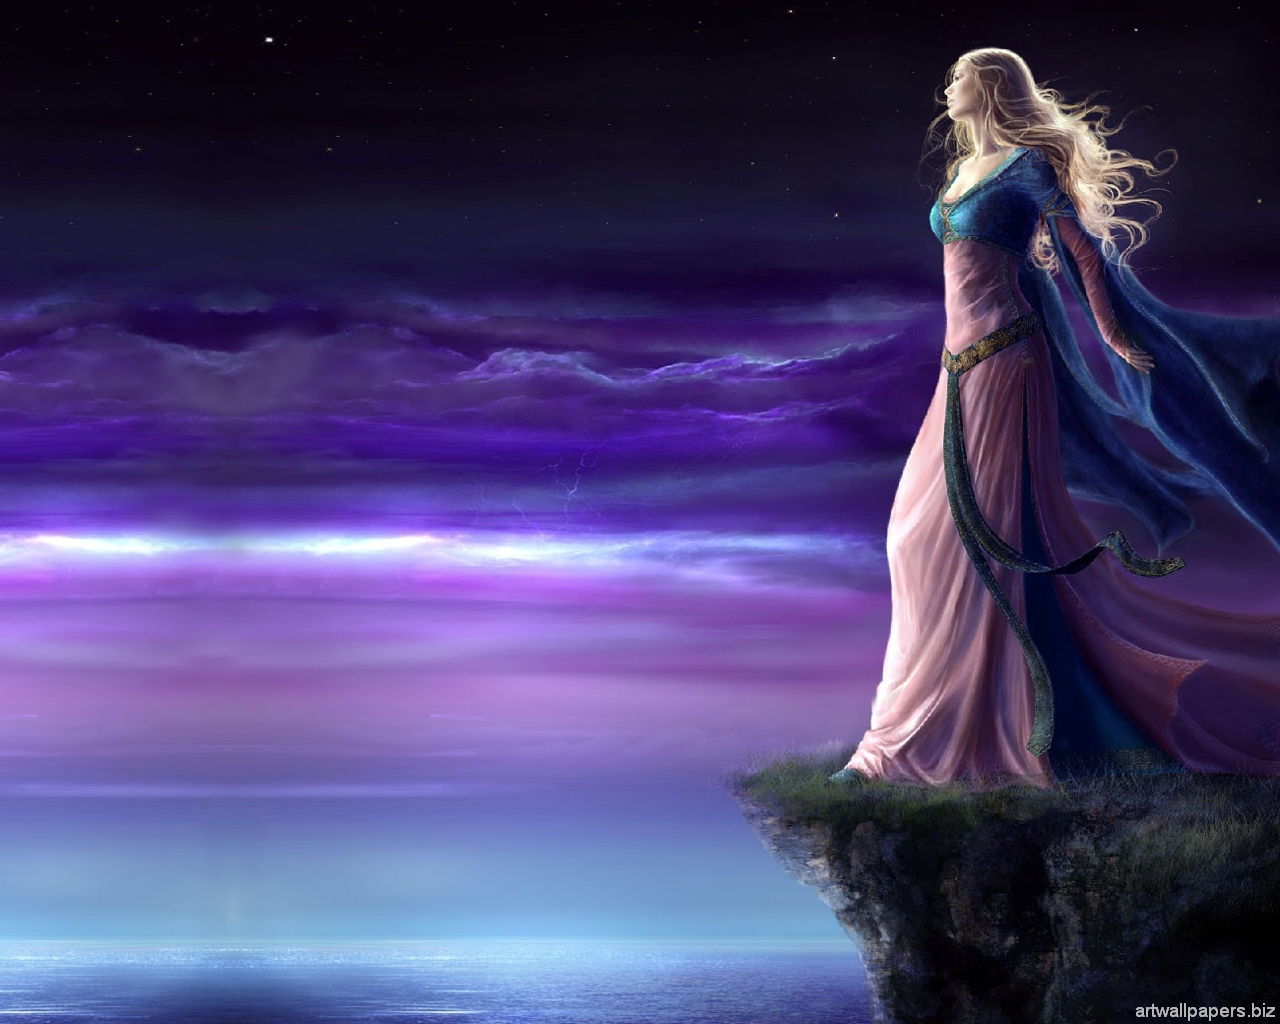 17+ images about Beautiful Images on Pinterest | Fantasy girl, Pc